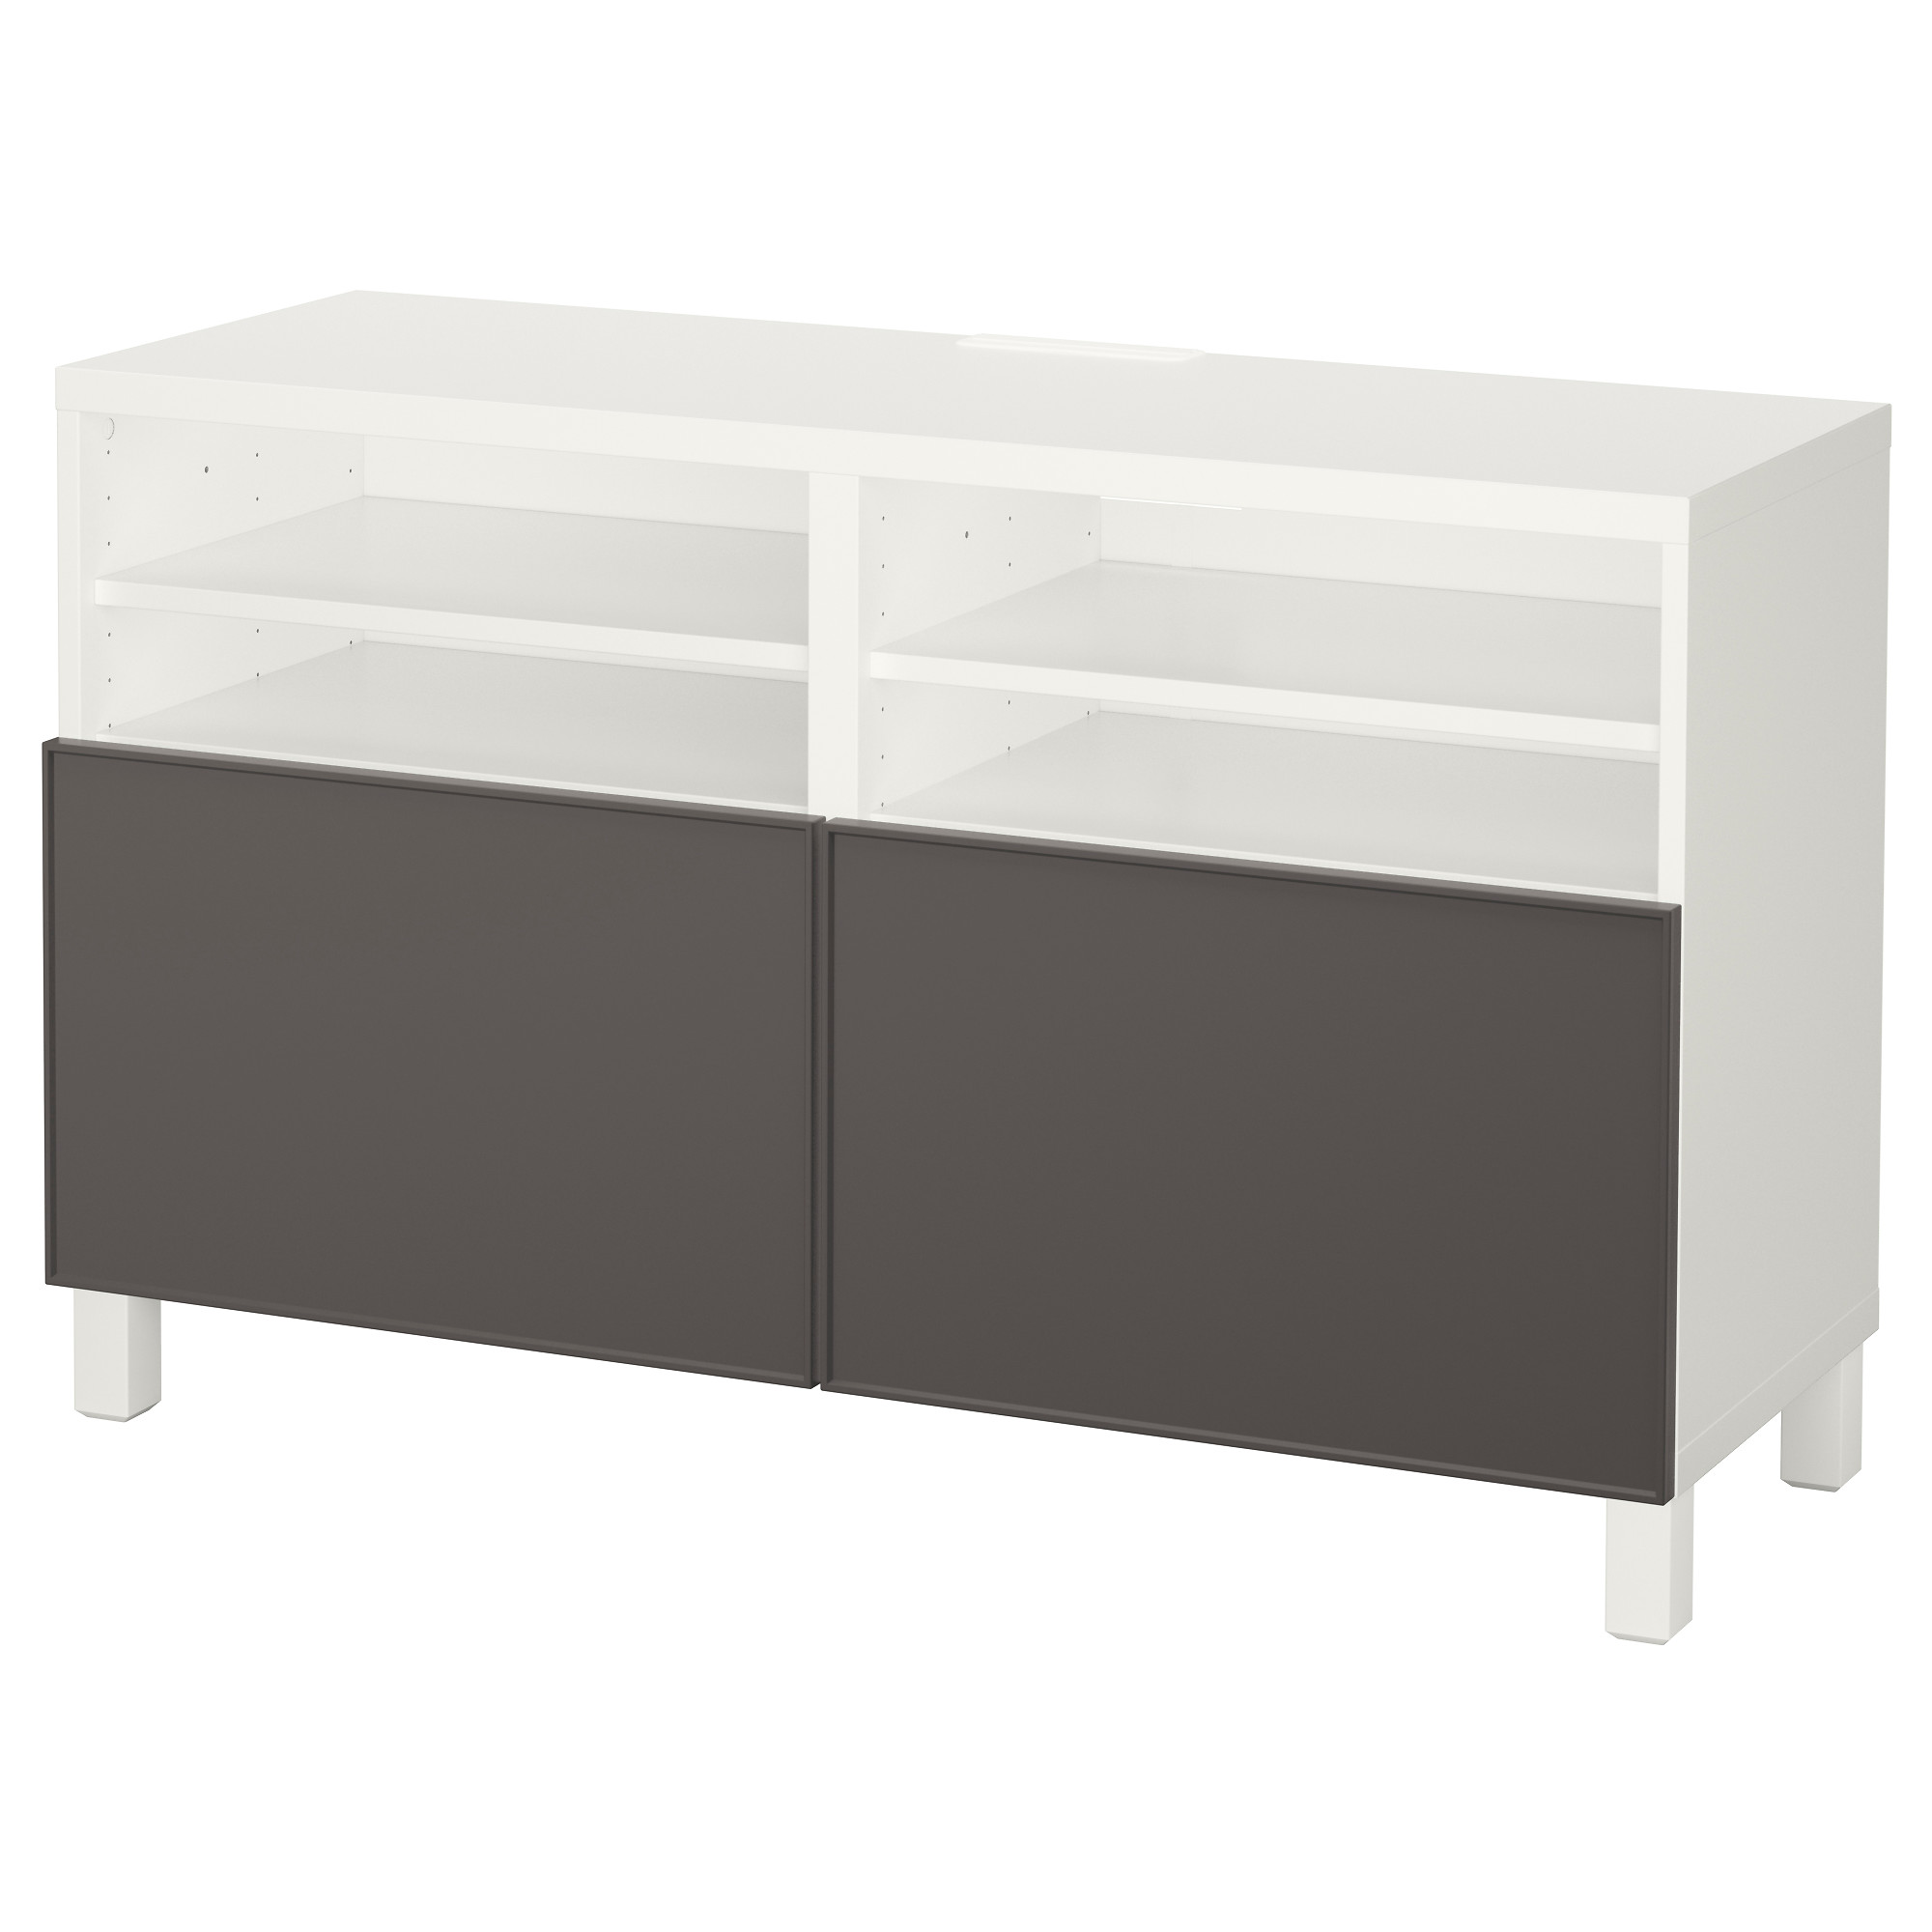 Interesting best banc tv avec portes blanc grundsviken for Meuble tv petite largeur